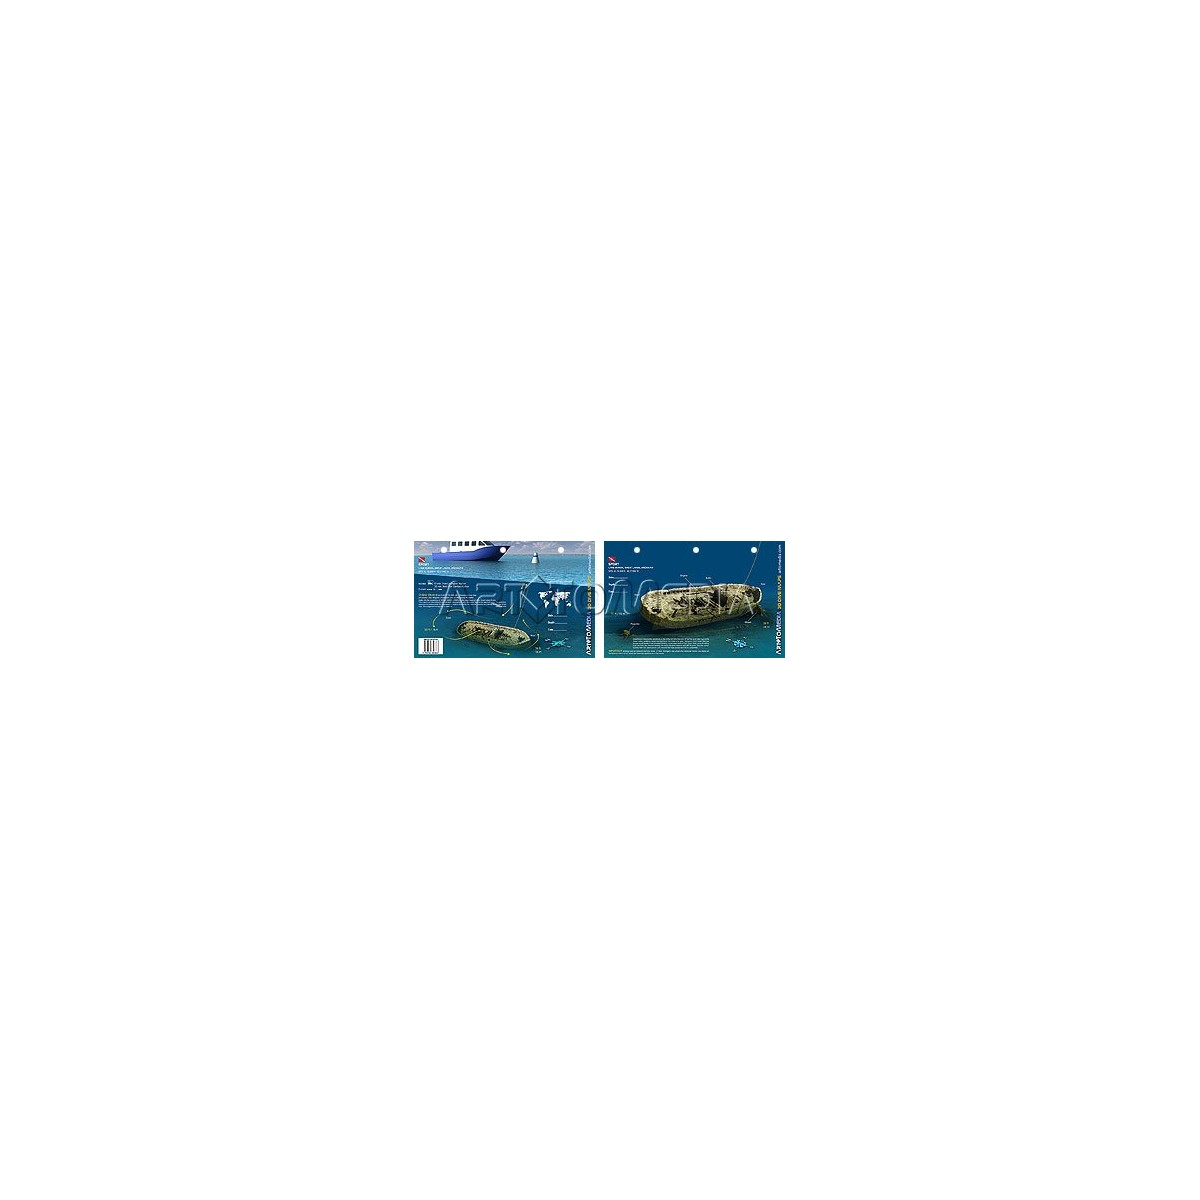 Sport Tug in Lake Huron (8.5 x 5.5 Inches) (21.6 x 15cm) - New Art to Media Underwater Waterproof 3D Dive Site Map